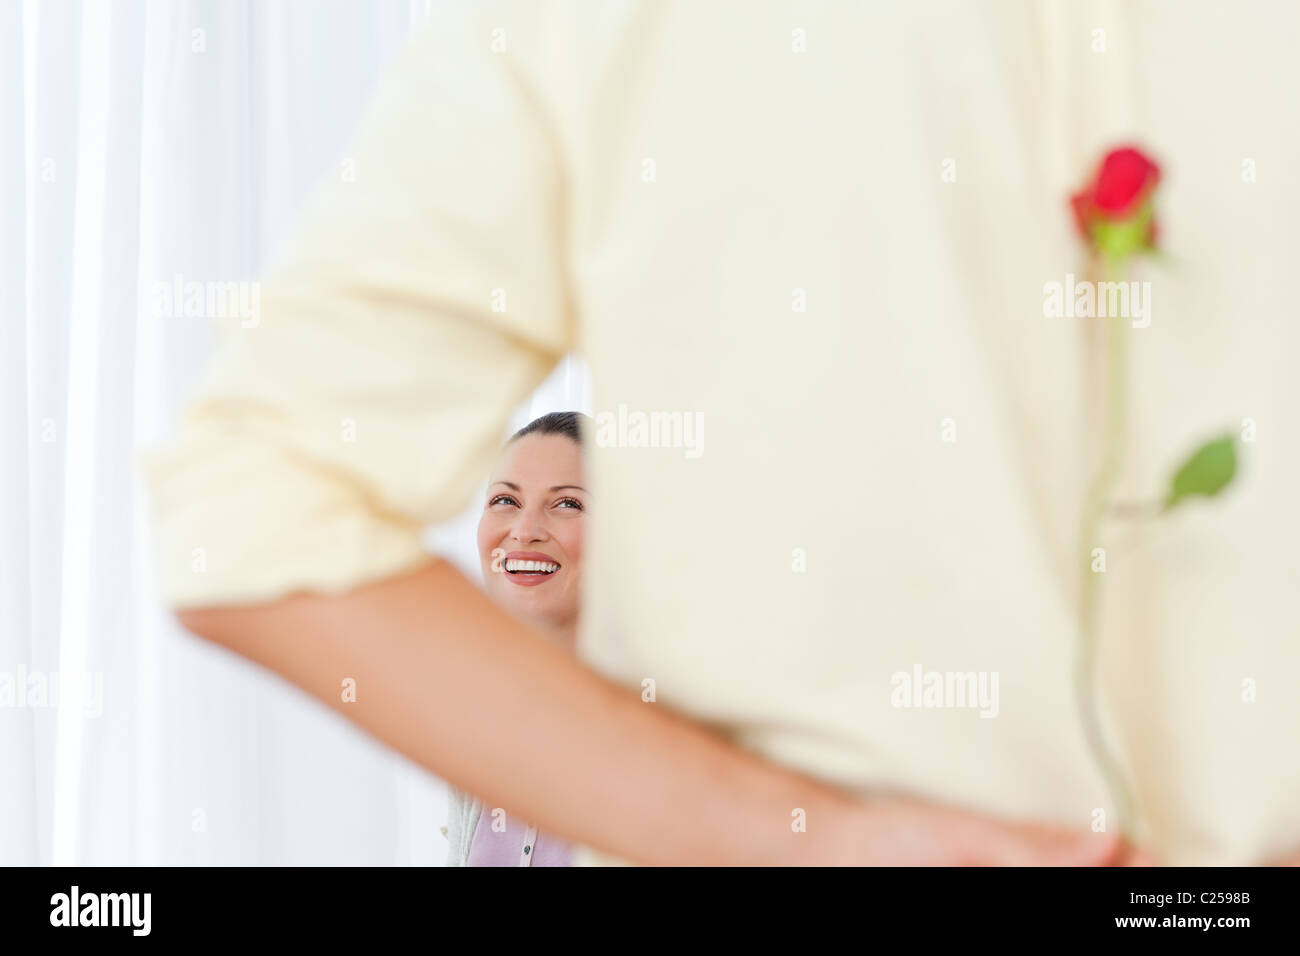 Rear view of a man hiding a rose for his girlfriend - Stock Image